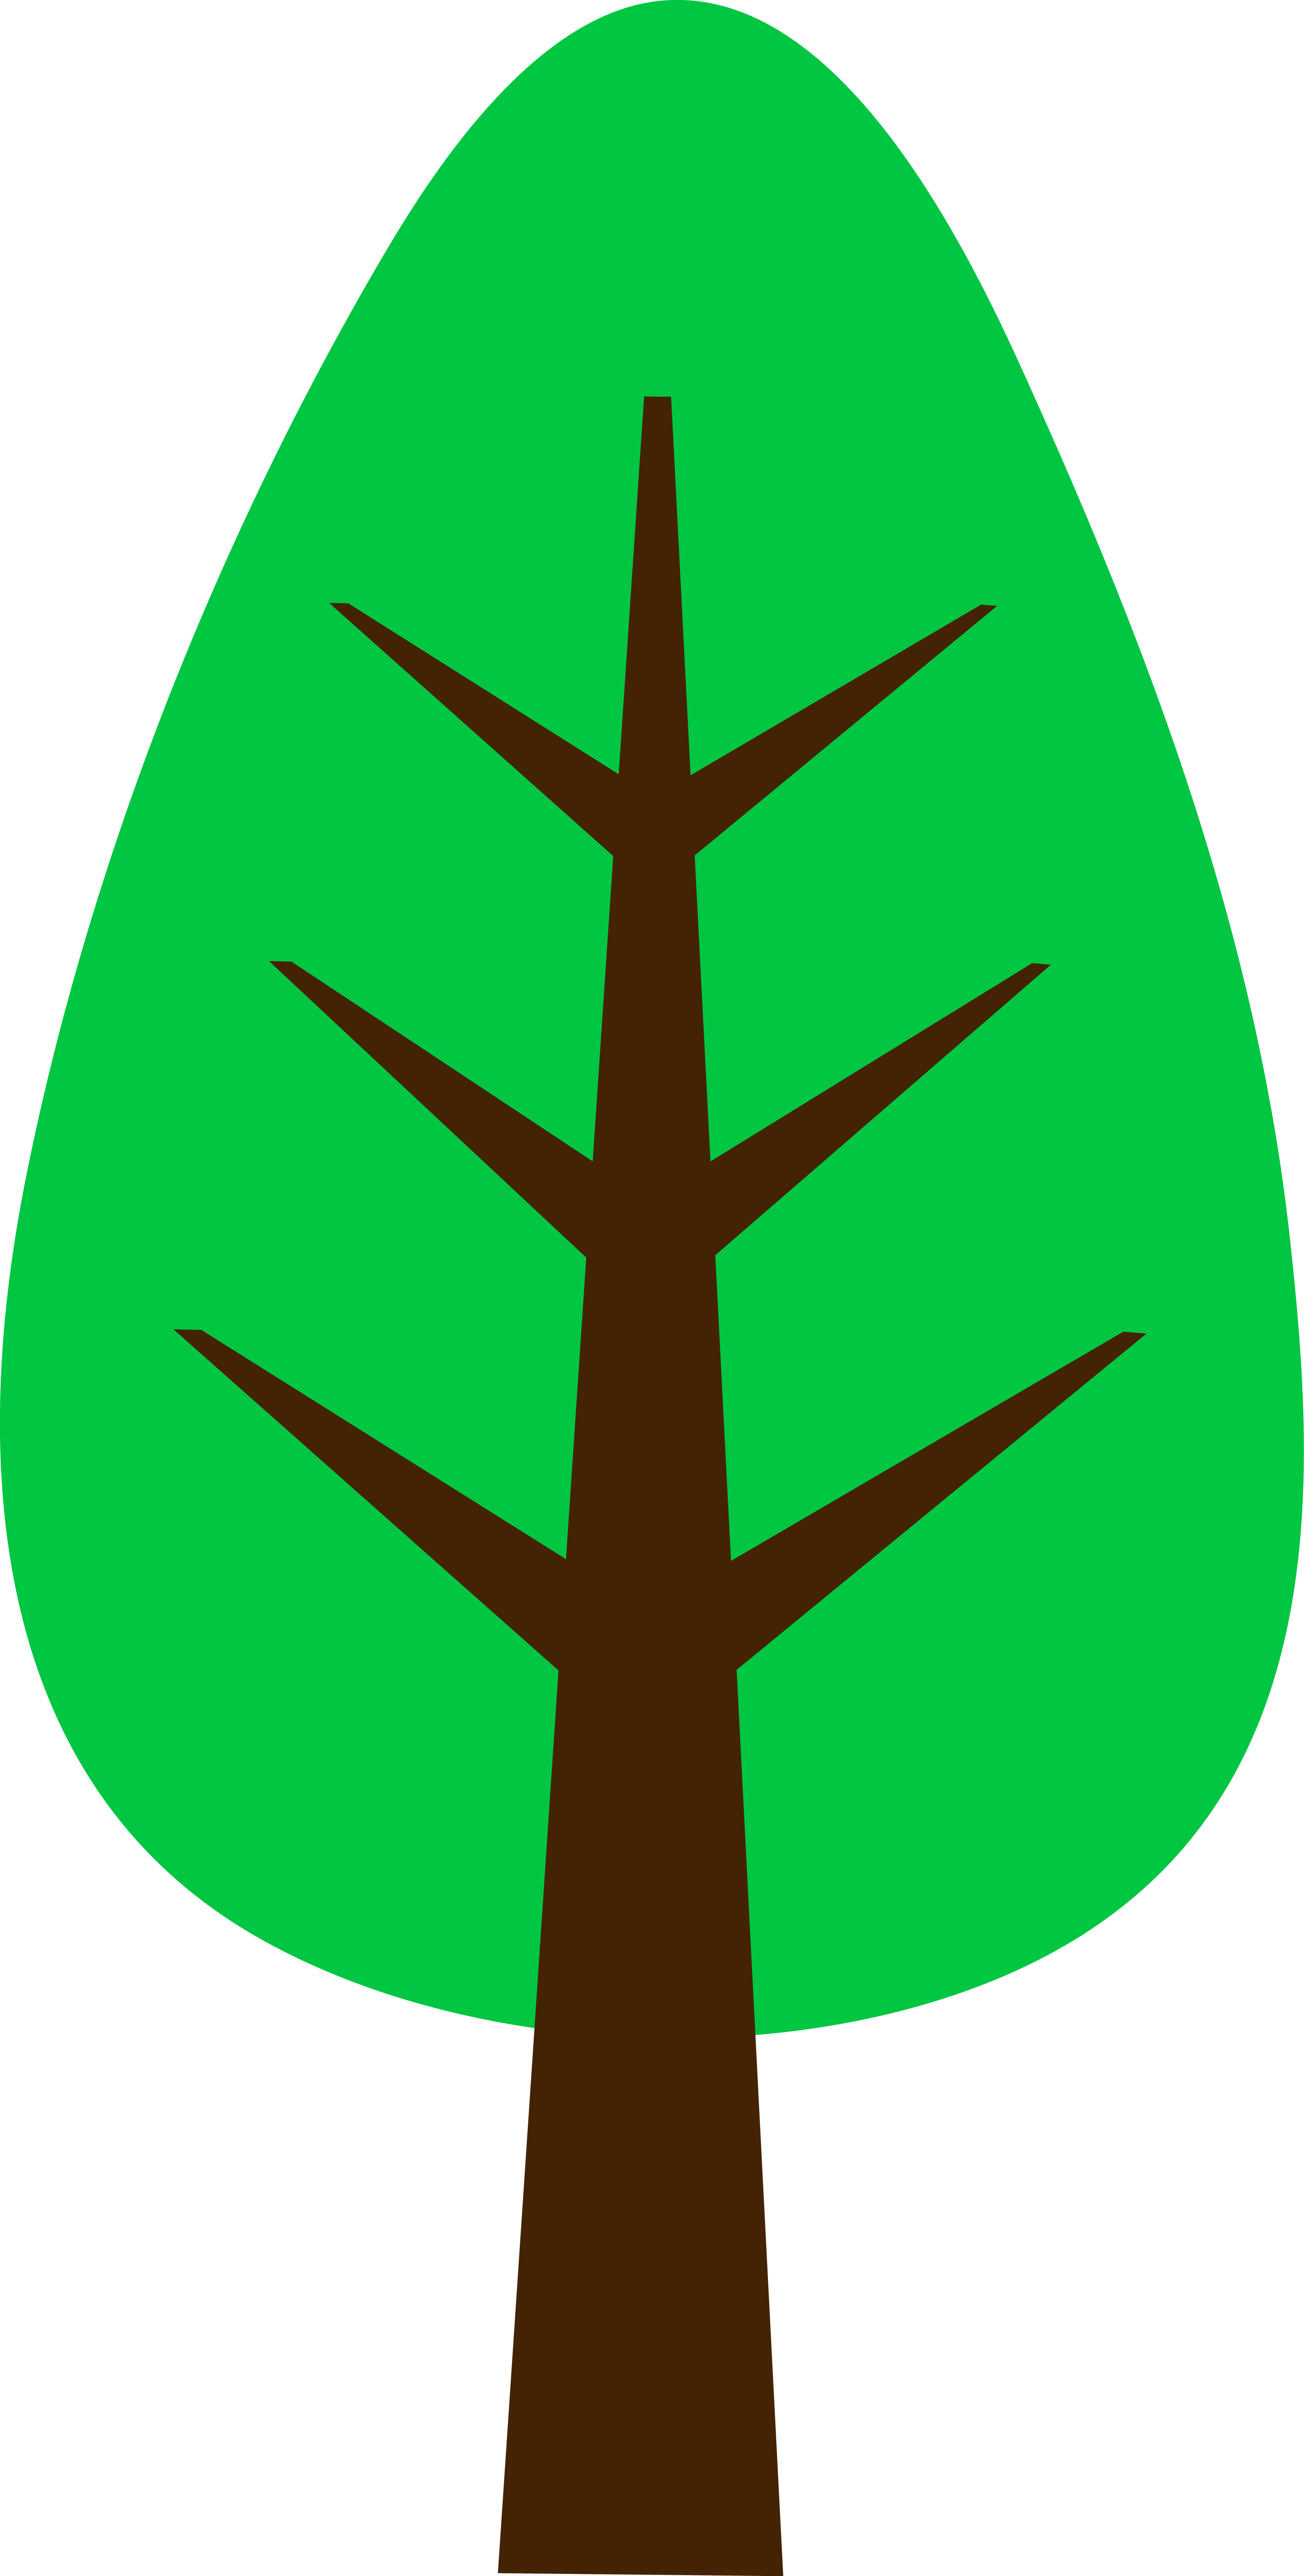 Cute Simple Green Tree Free Clipart Free Image